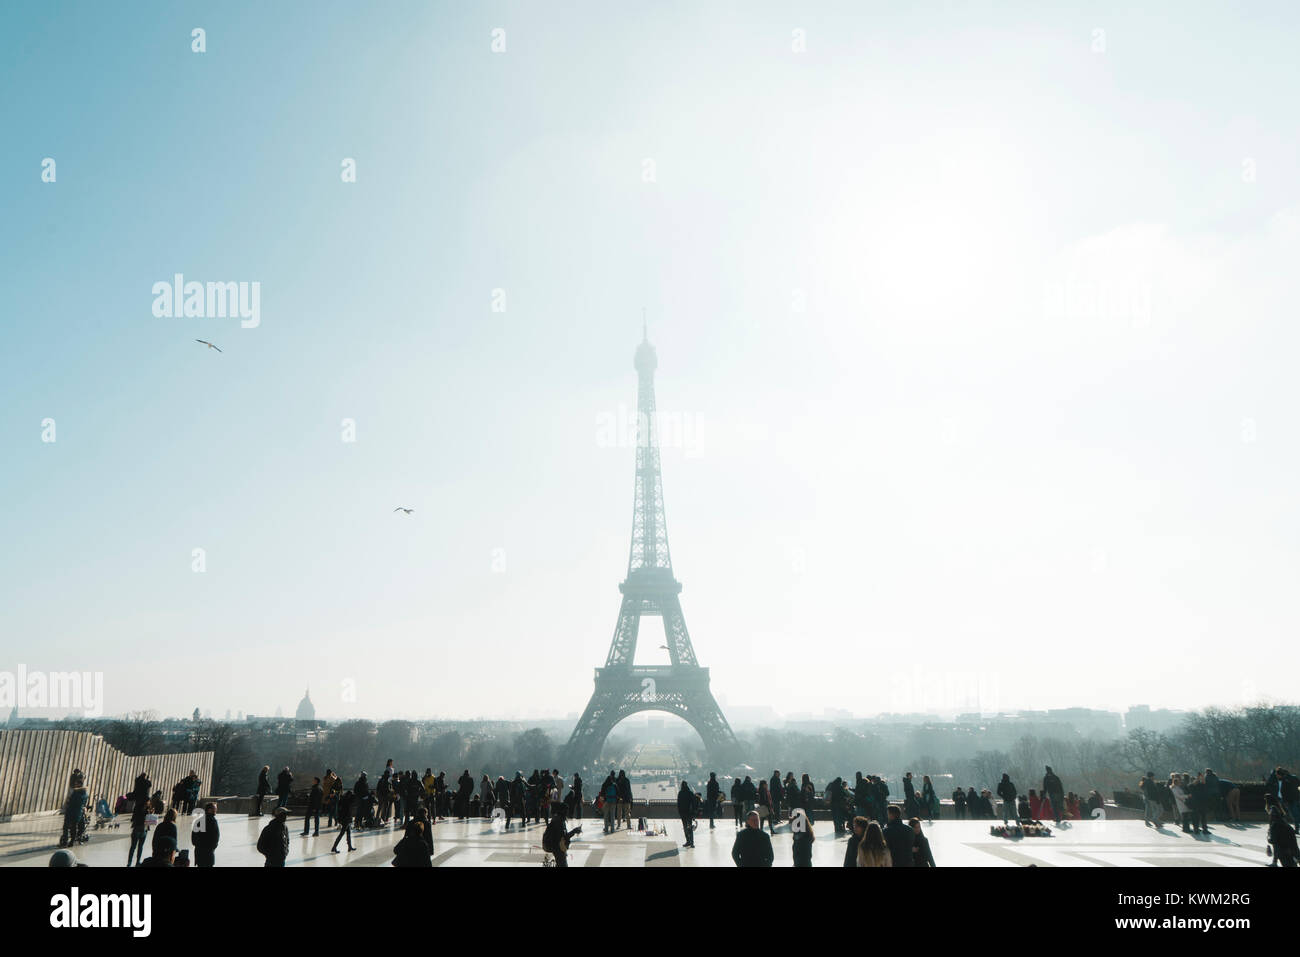 View of Eiffel tower against clear sky with tourists in foreground - Stock Image